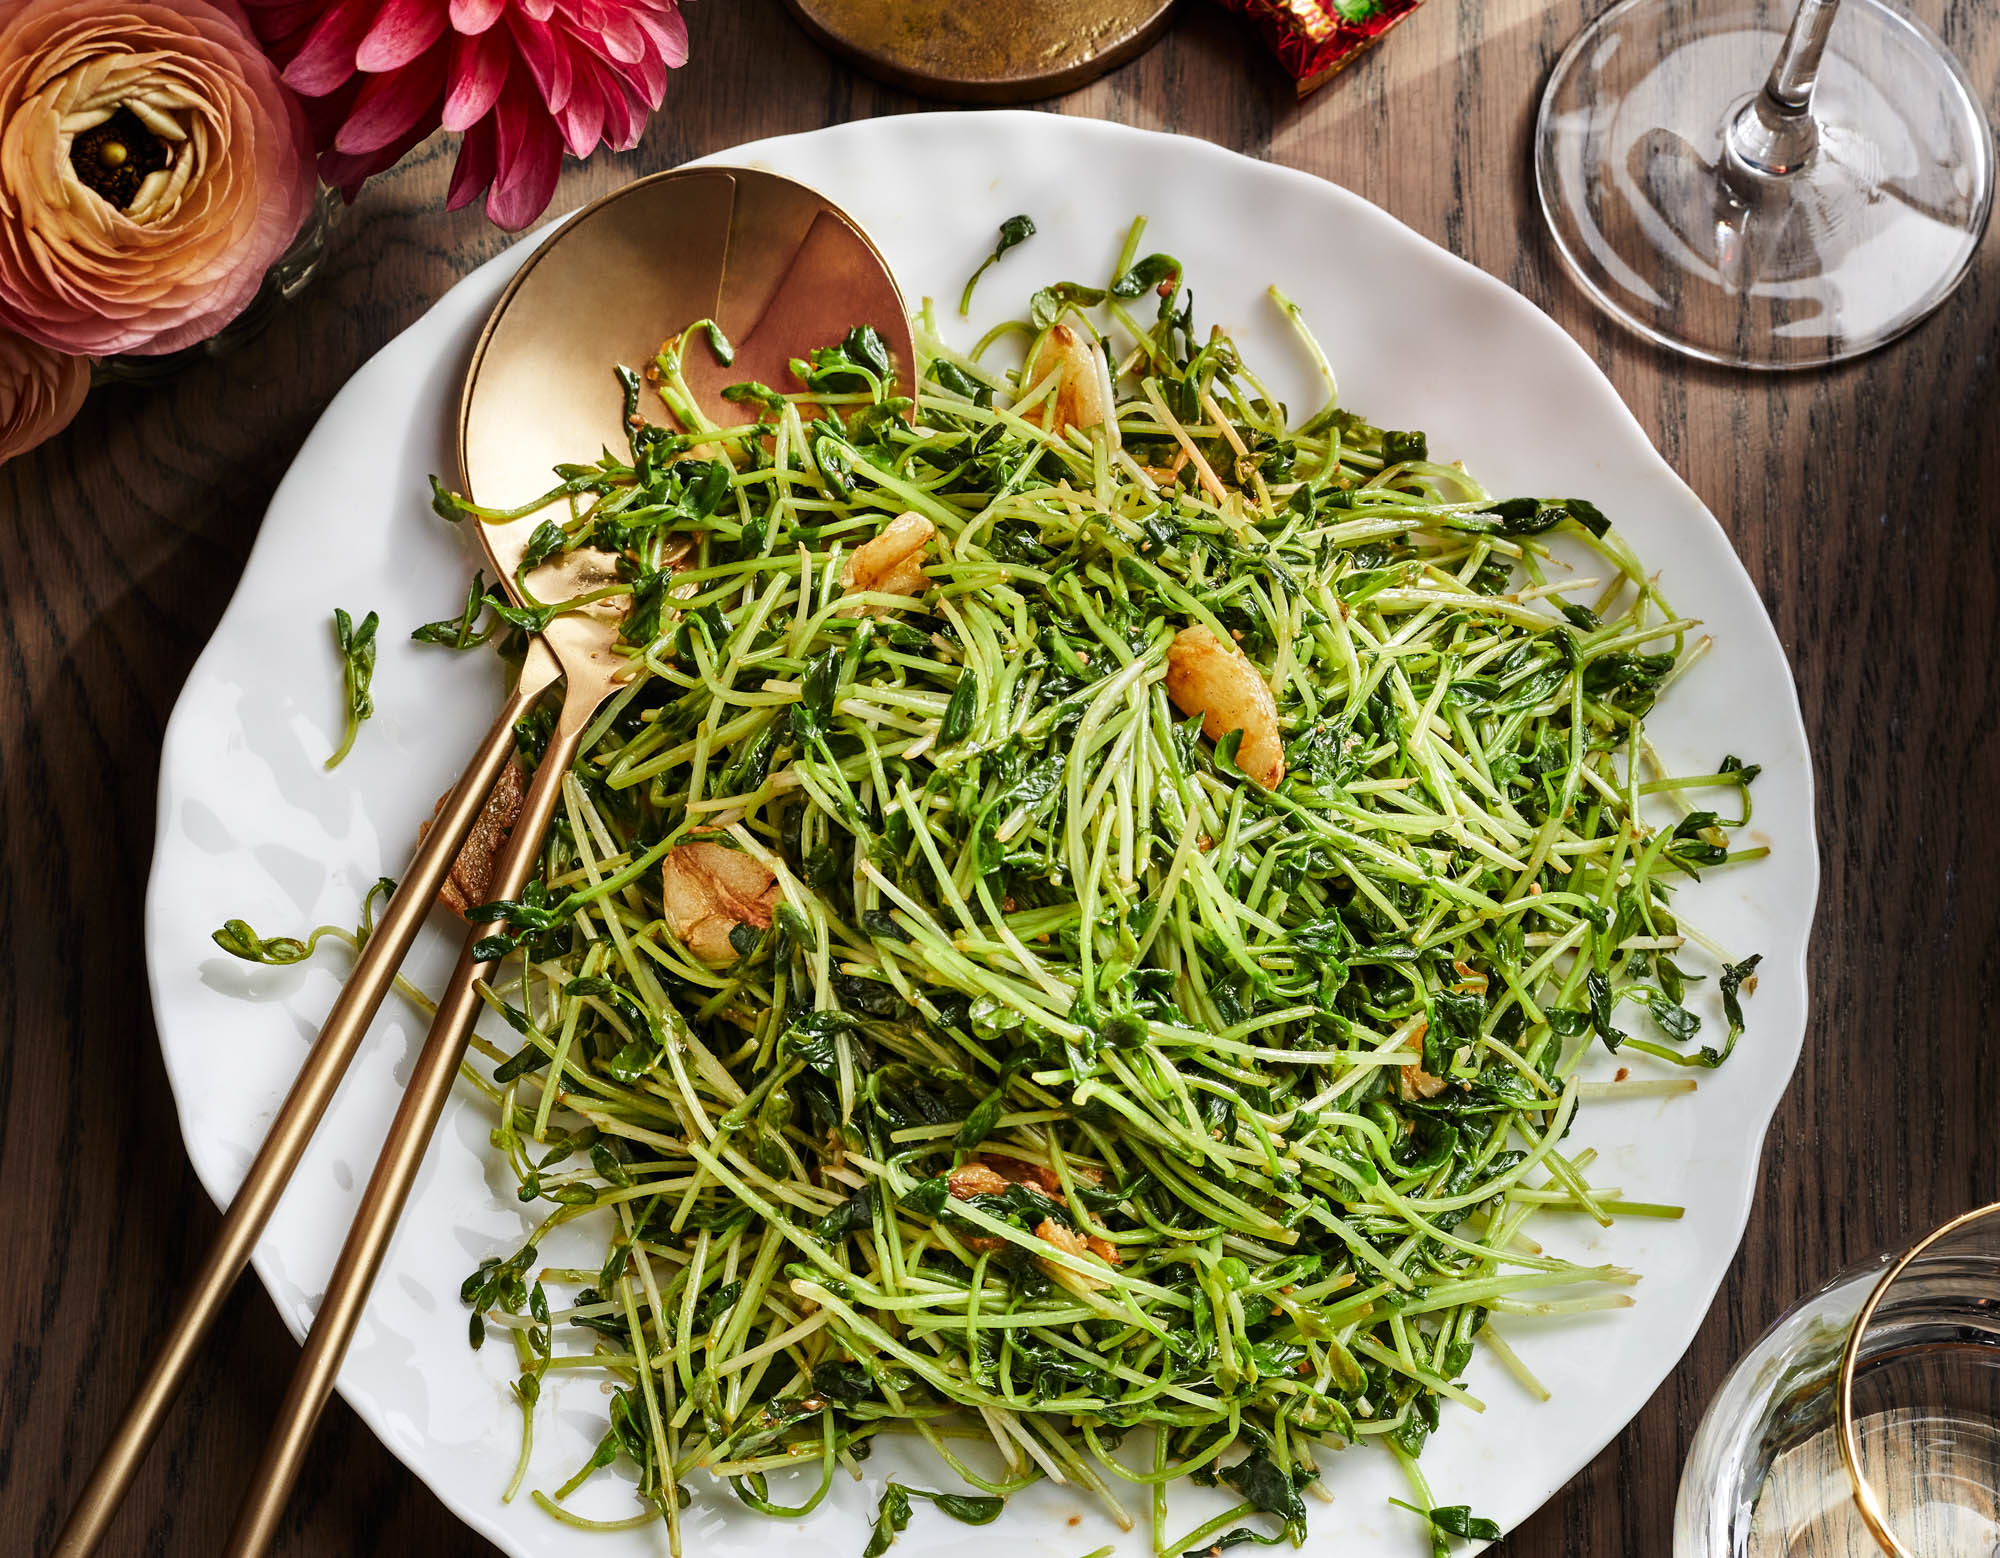 Chow Dau Miu (Garlicky Stir-Fried Pea Sprouts)